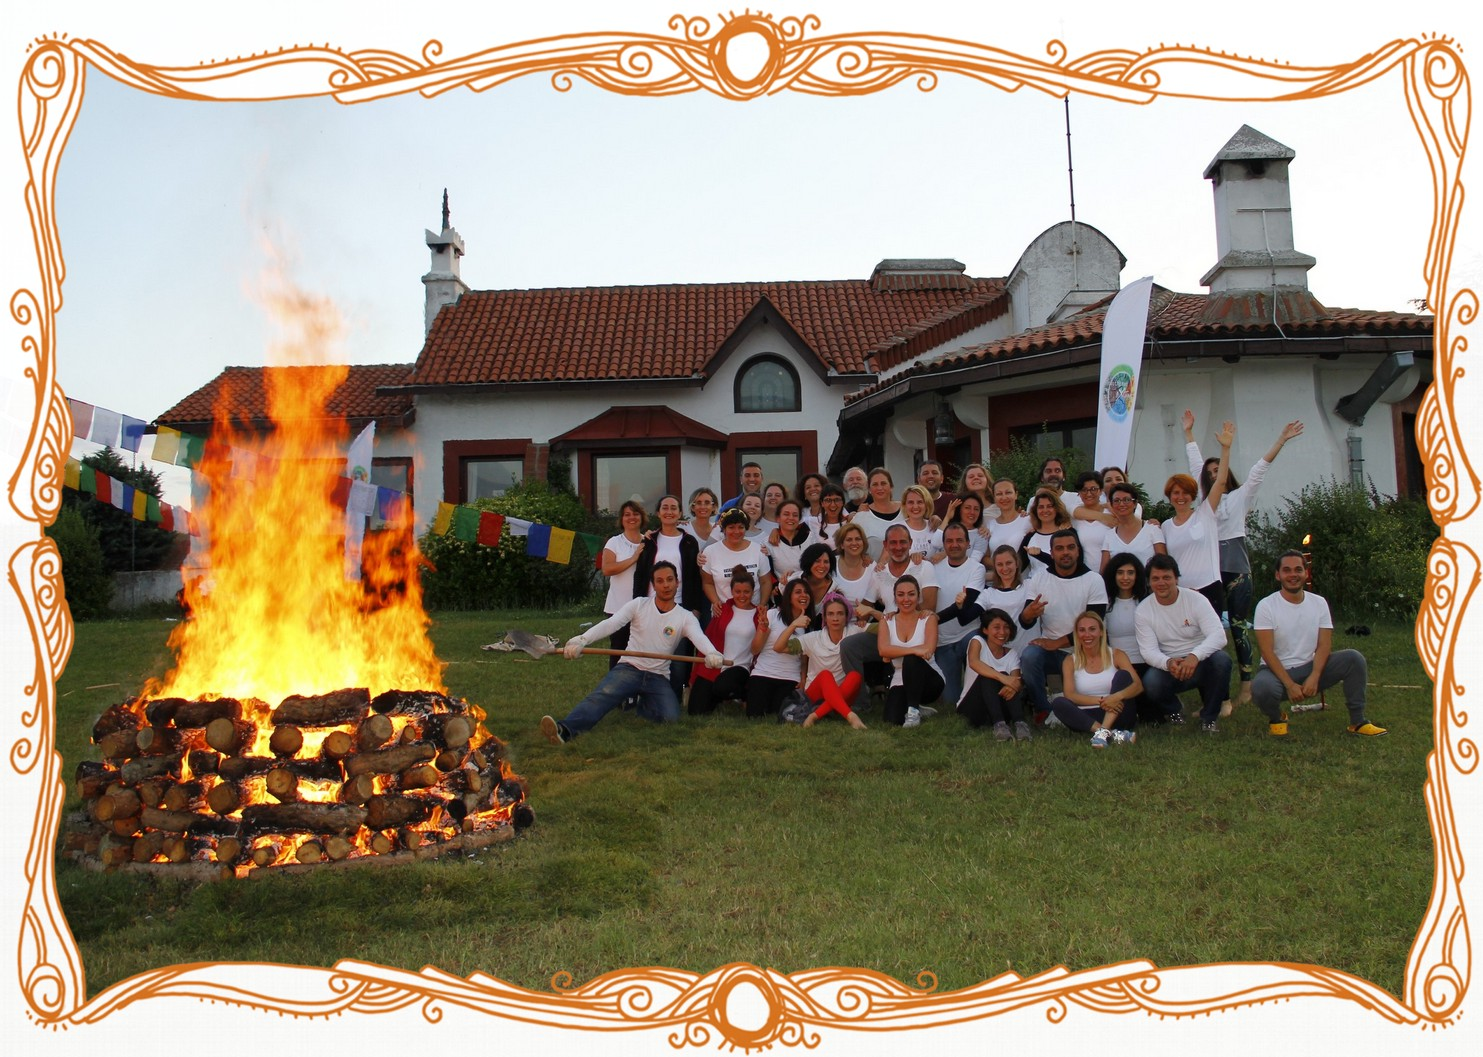 Turkey Firewalking